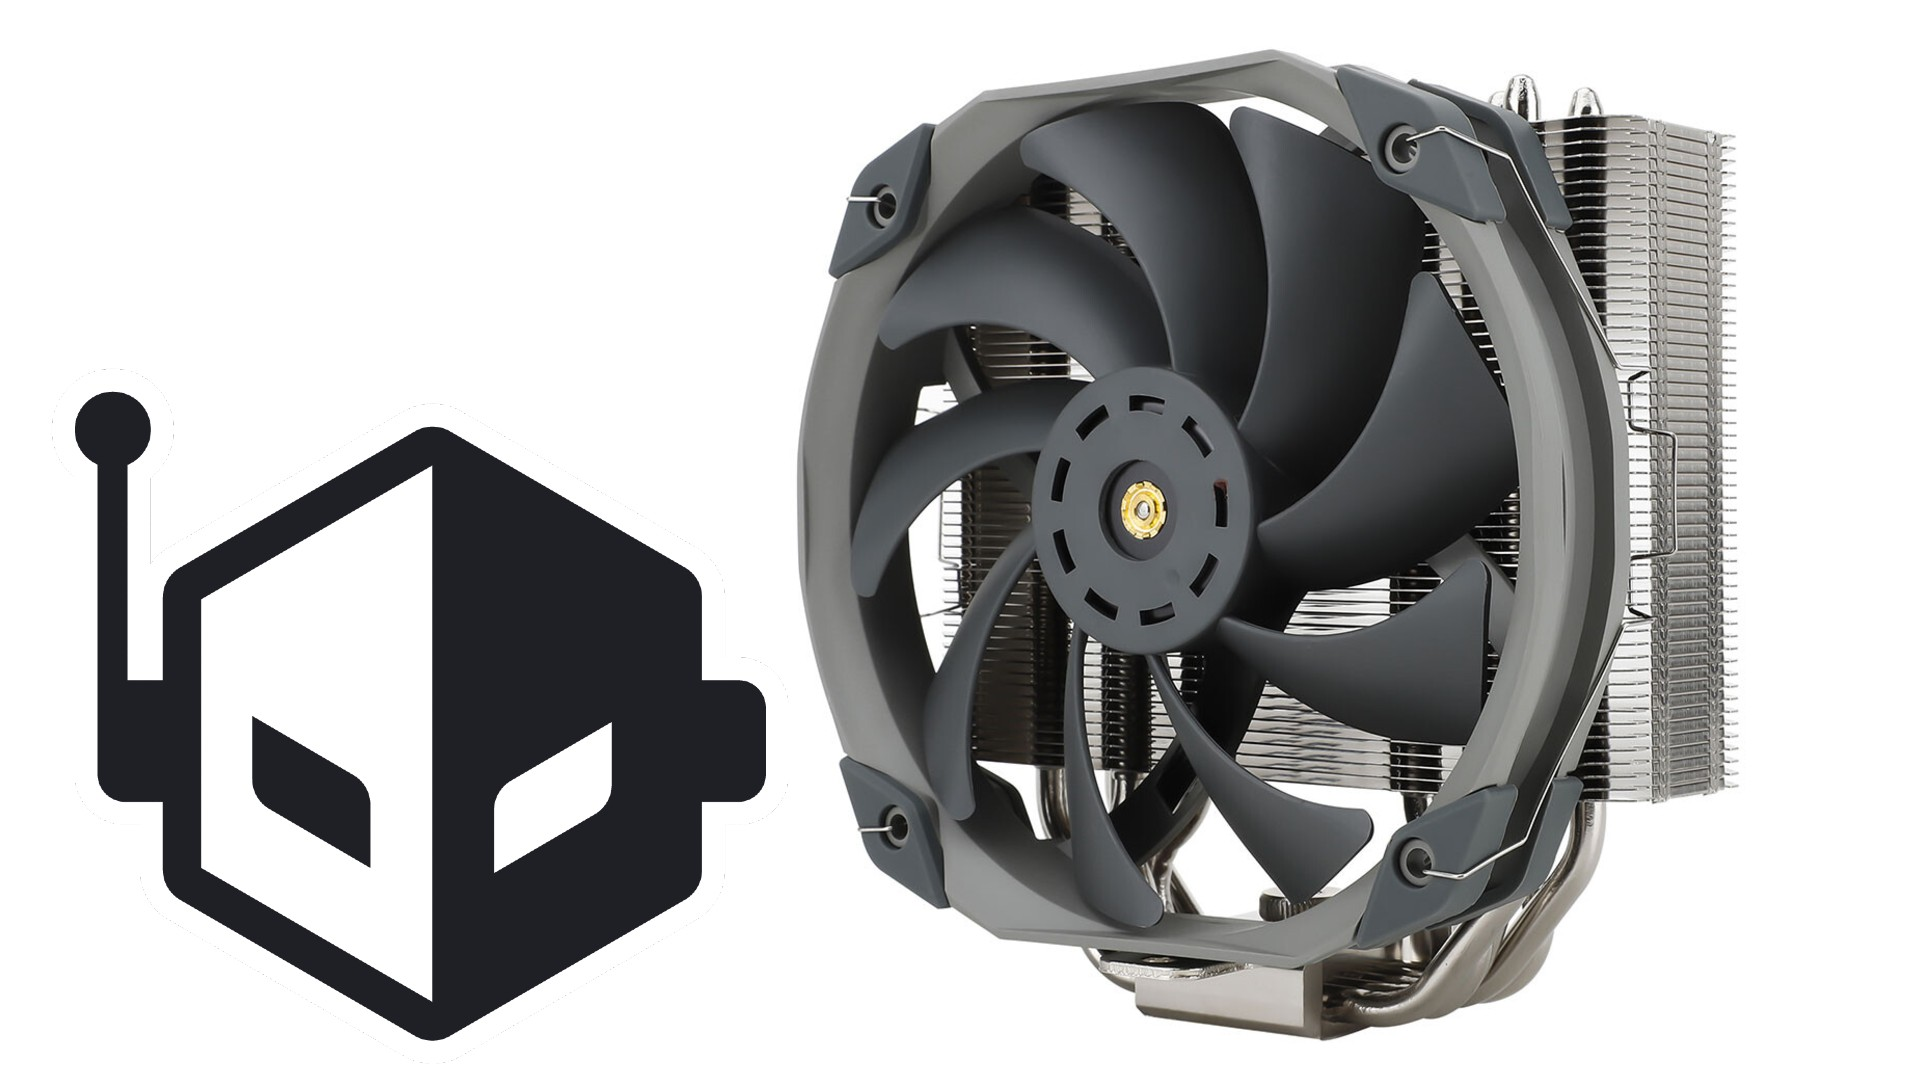 Thermalright Announces the TA140 EX CPU Cooler